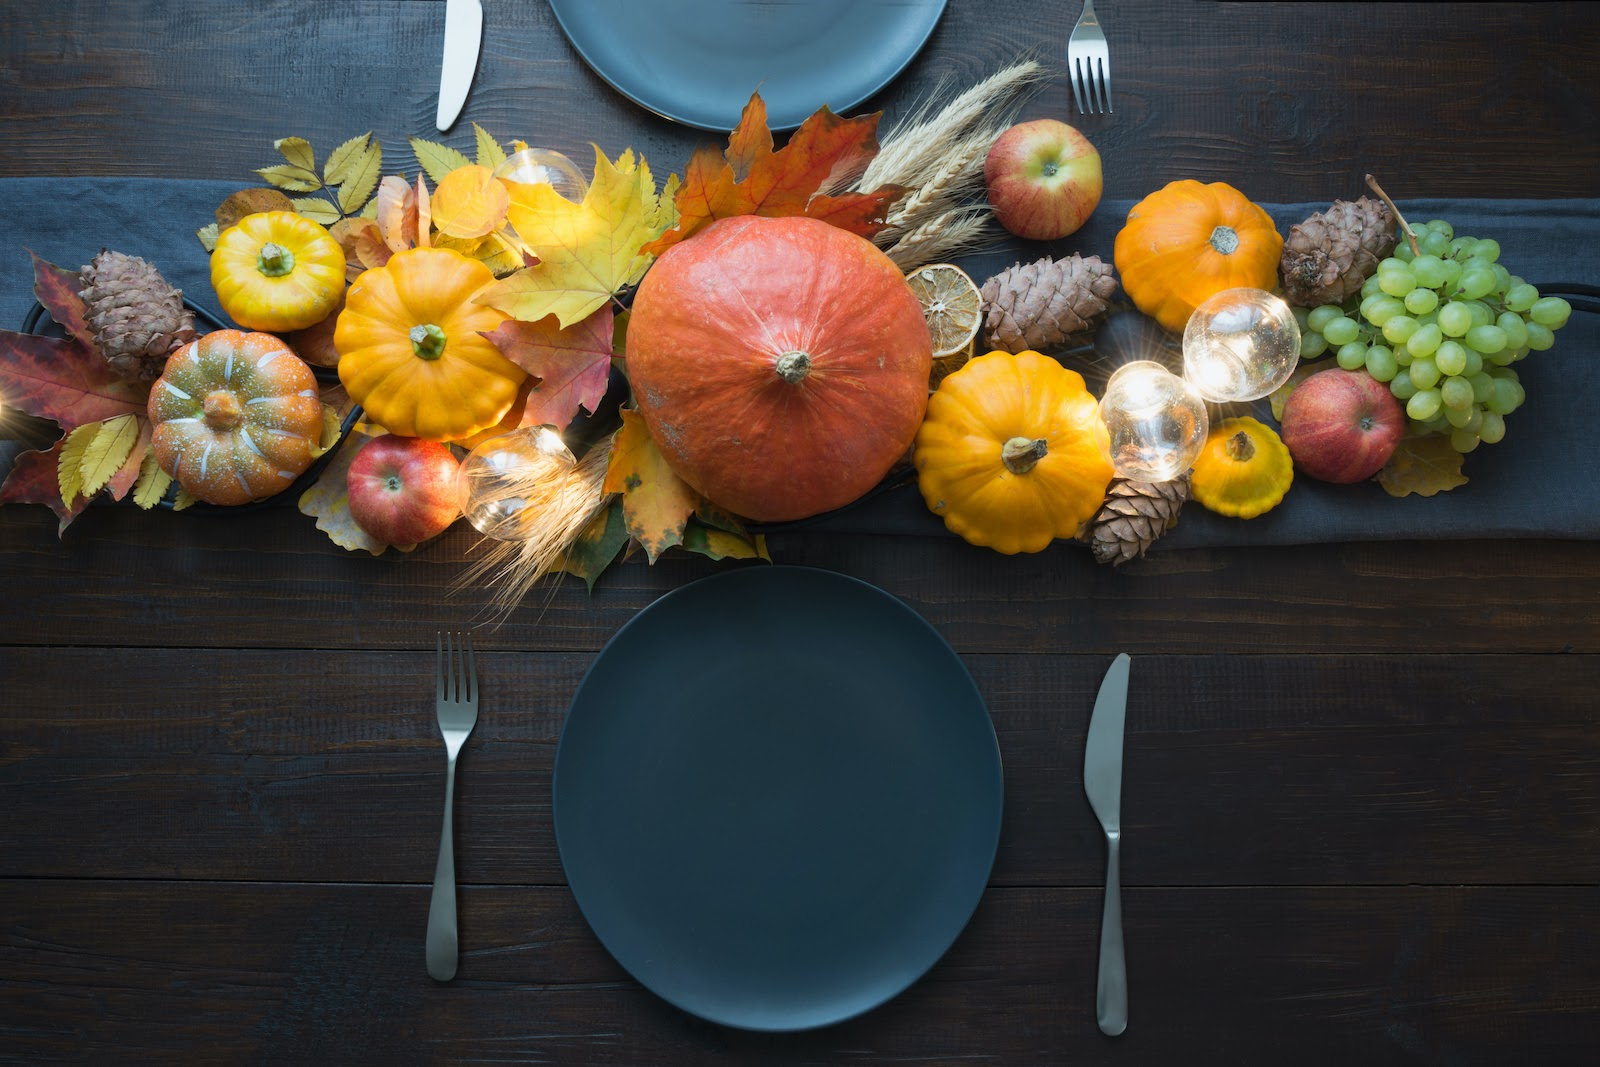 Natural Thanksgiving decoration ideas for tablescapes.